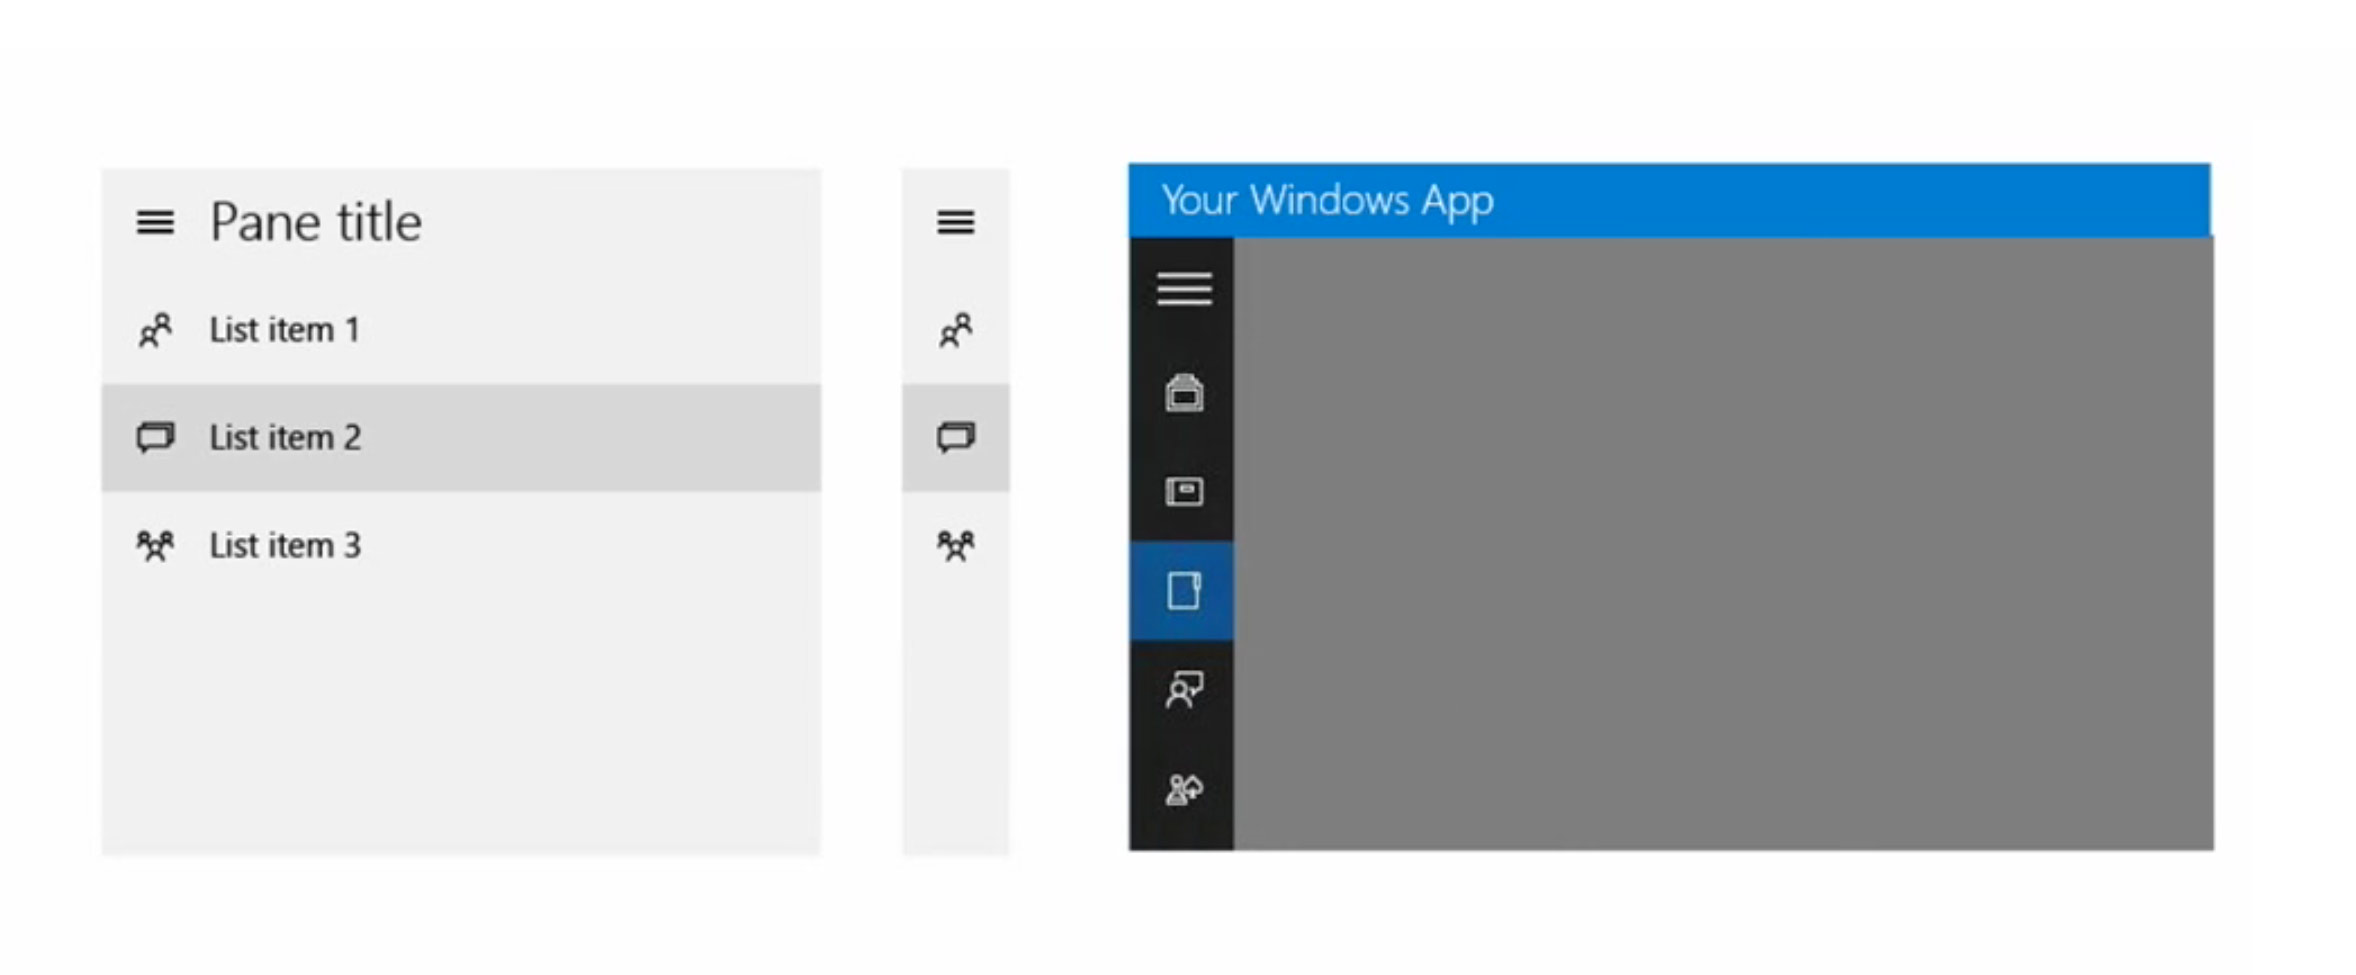 Split view in Windows 10